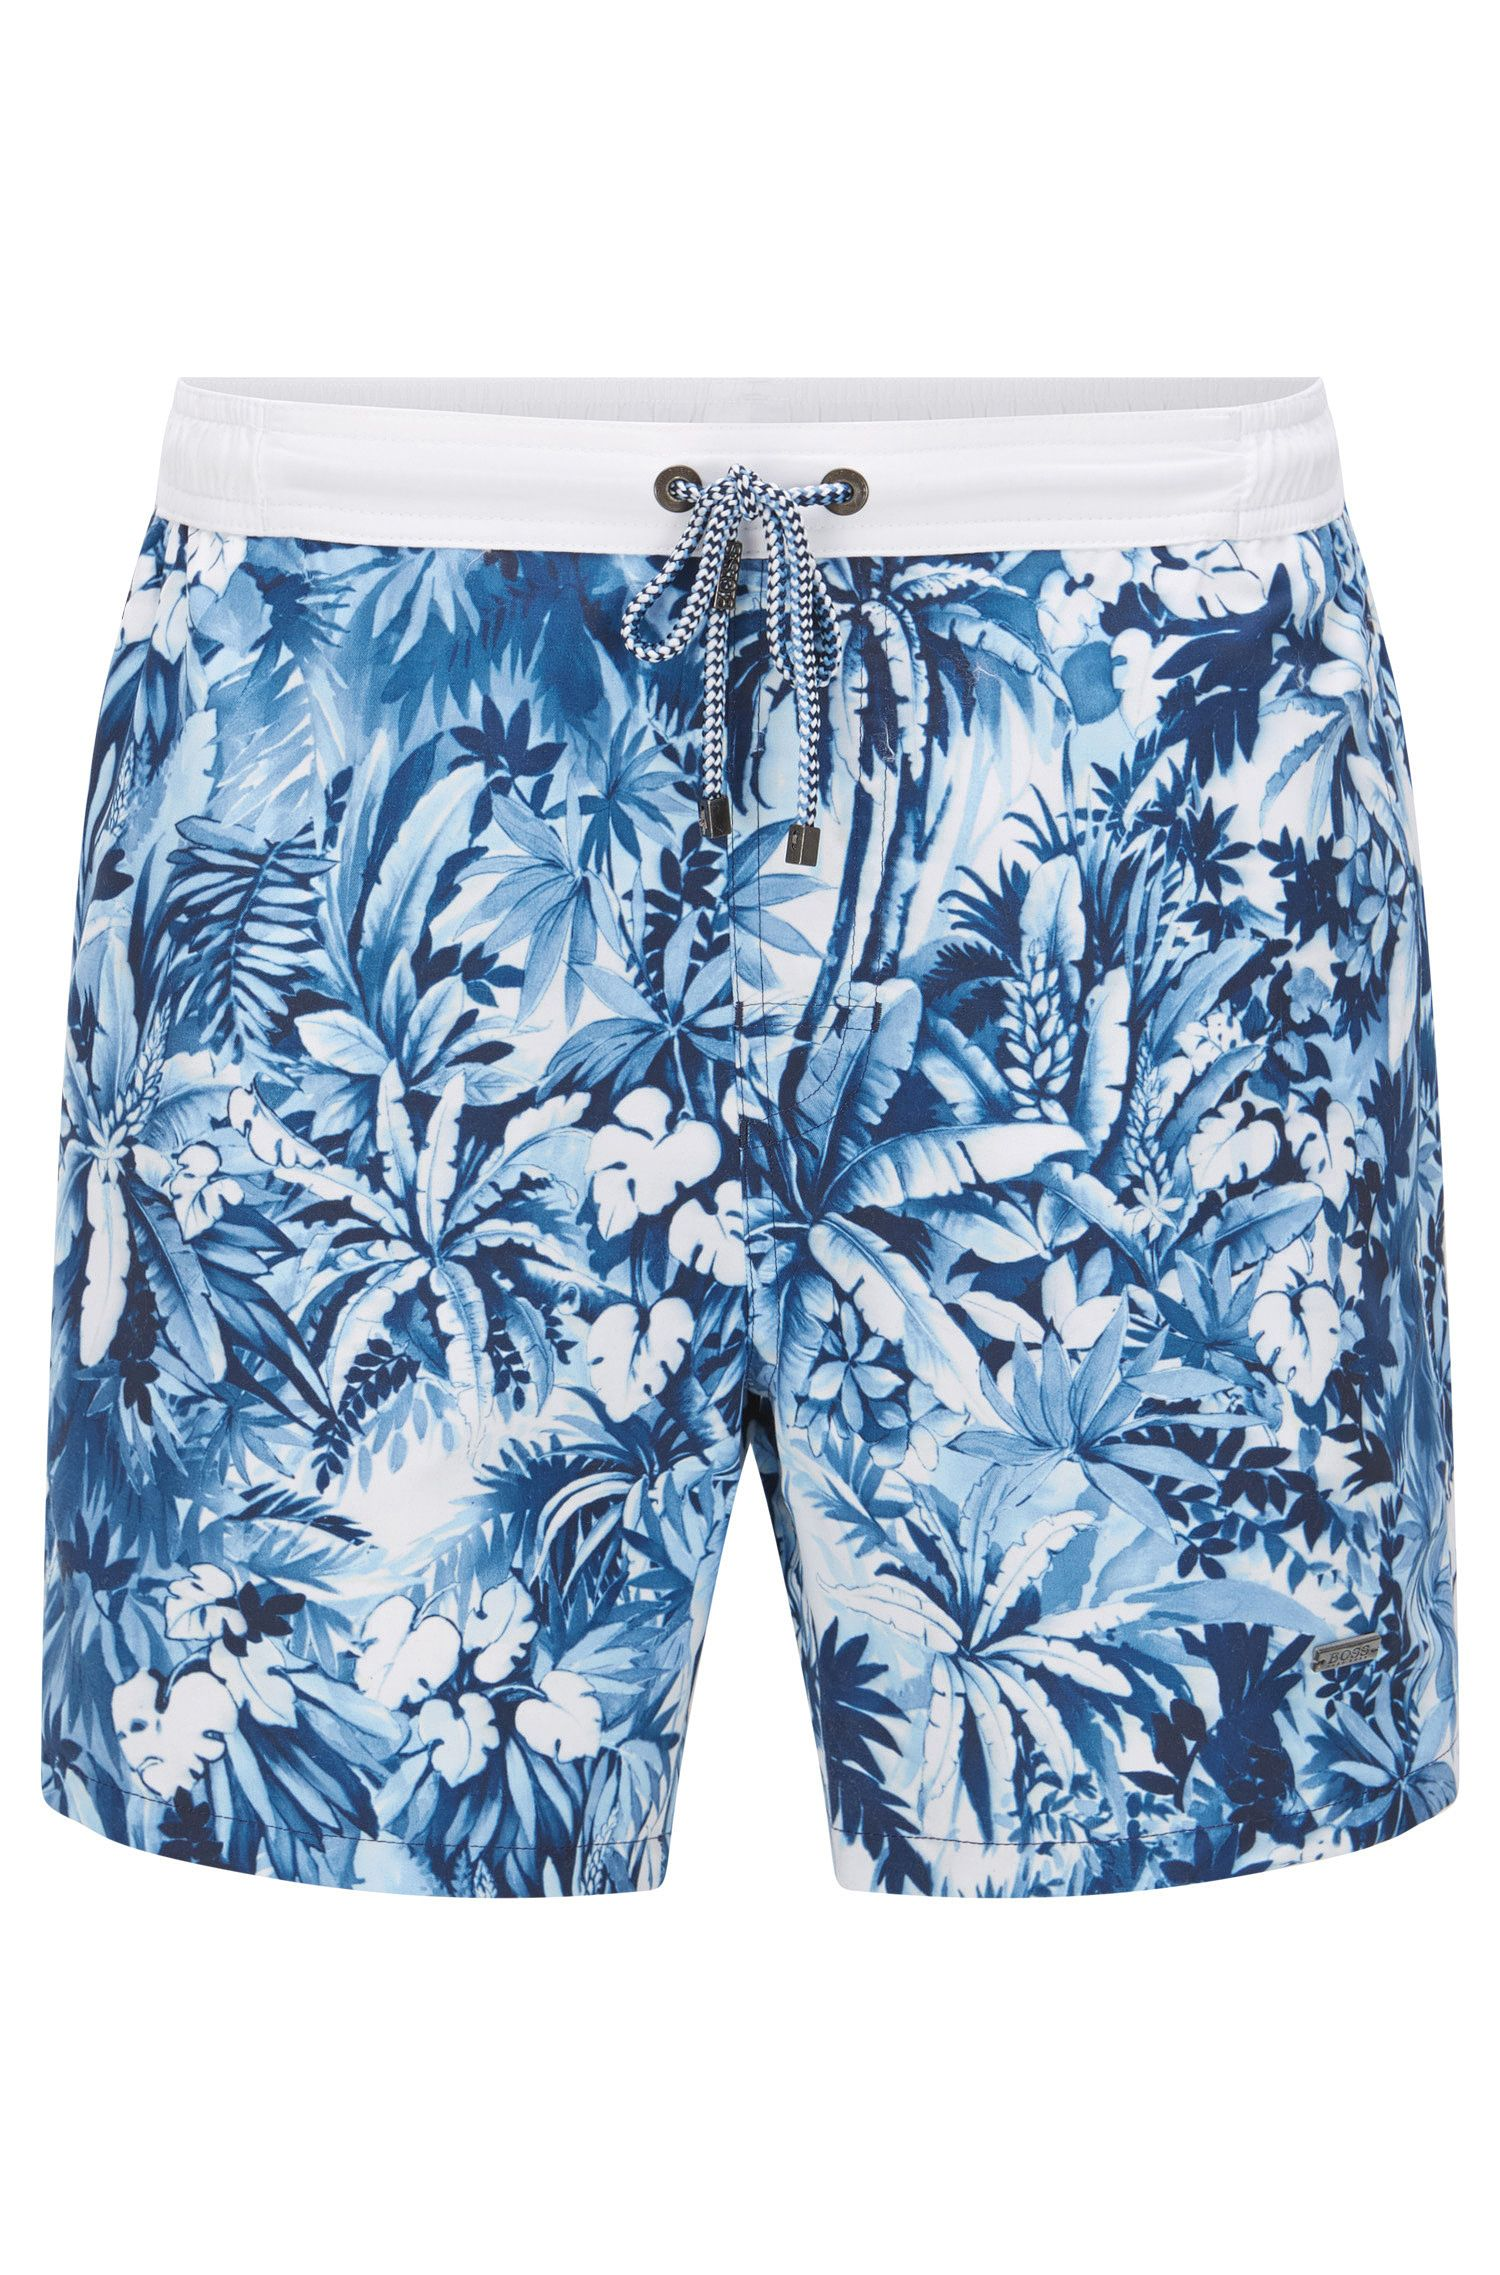 Quick Dry Drawstring Swim Trunk | Mandarinfish